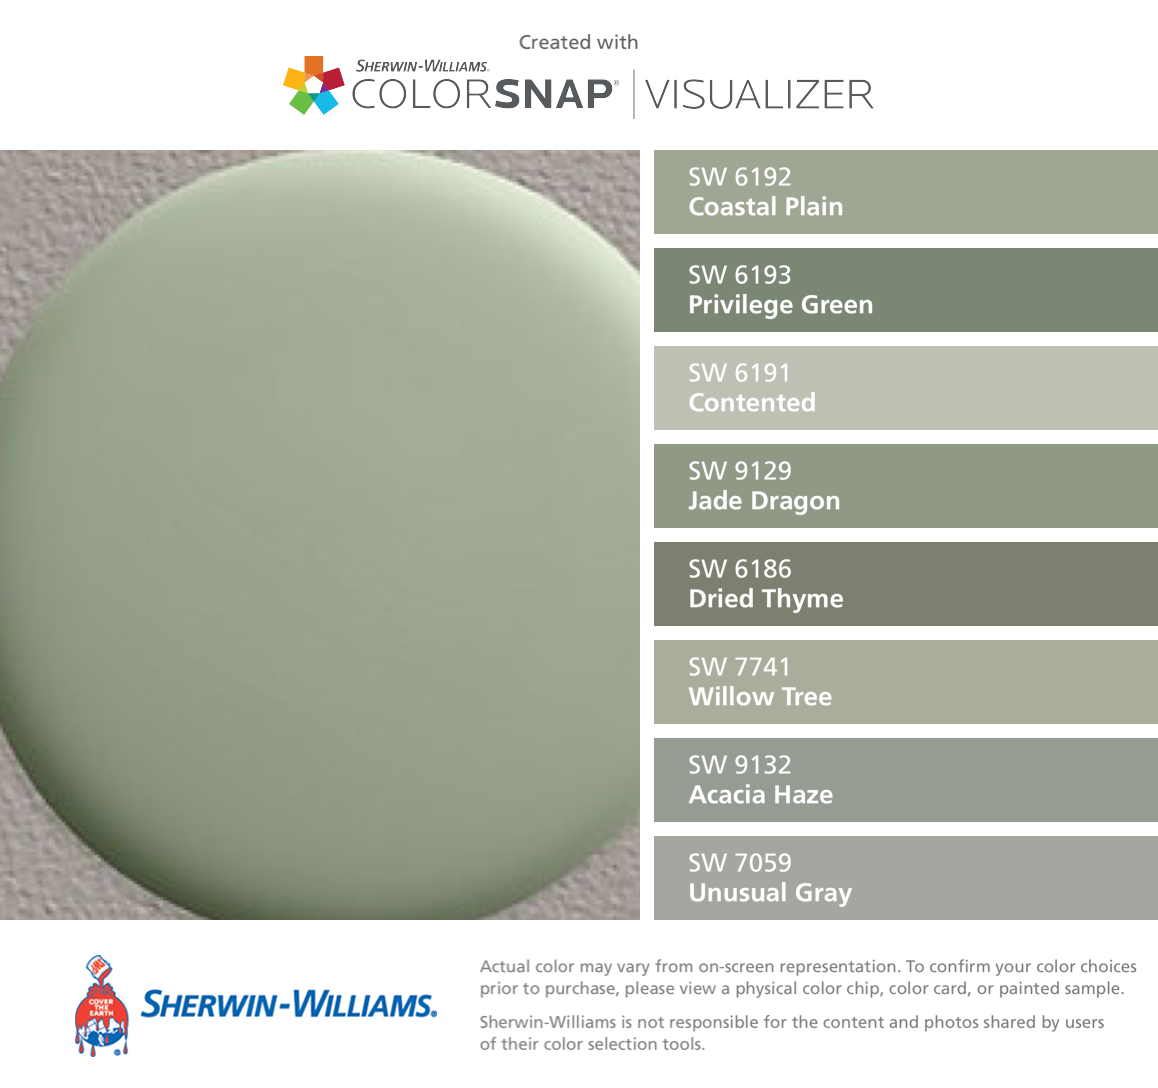 Sherwin williams paint colors sherwin williams 6249 storm cloud - Sherwin Williams Color Match For Restoration Hardware Bay Laurel